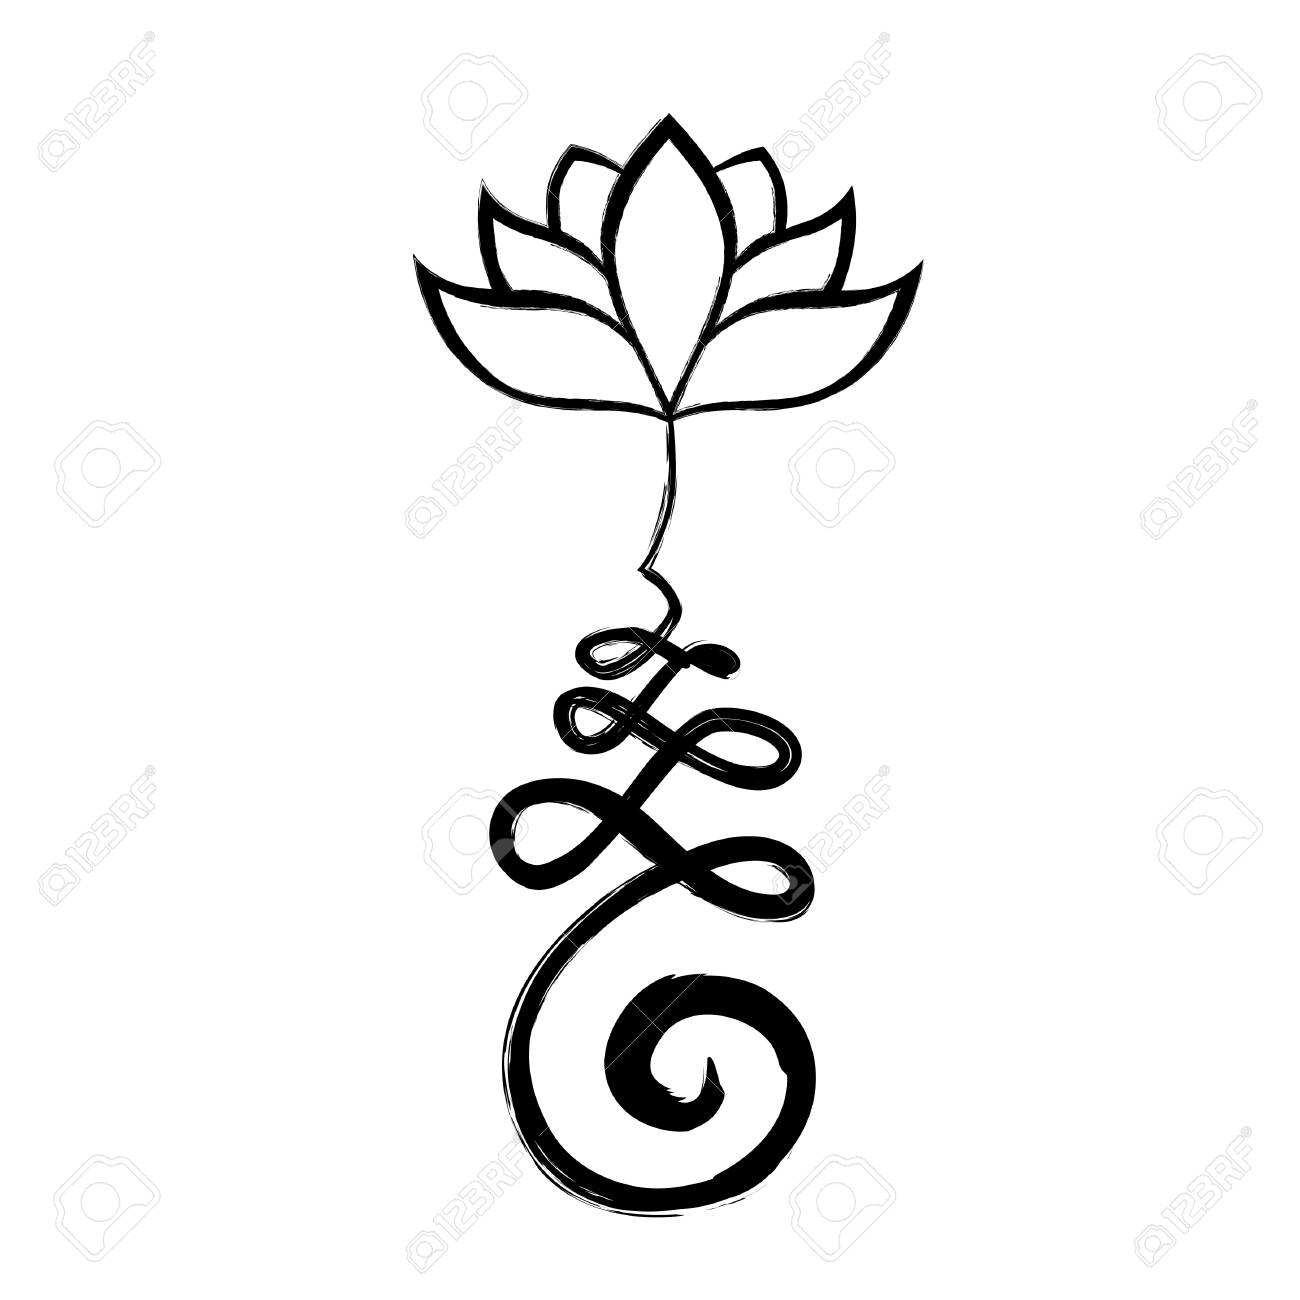 Buddhist Symbol for life path with lotus flower, Unalome - 101984468